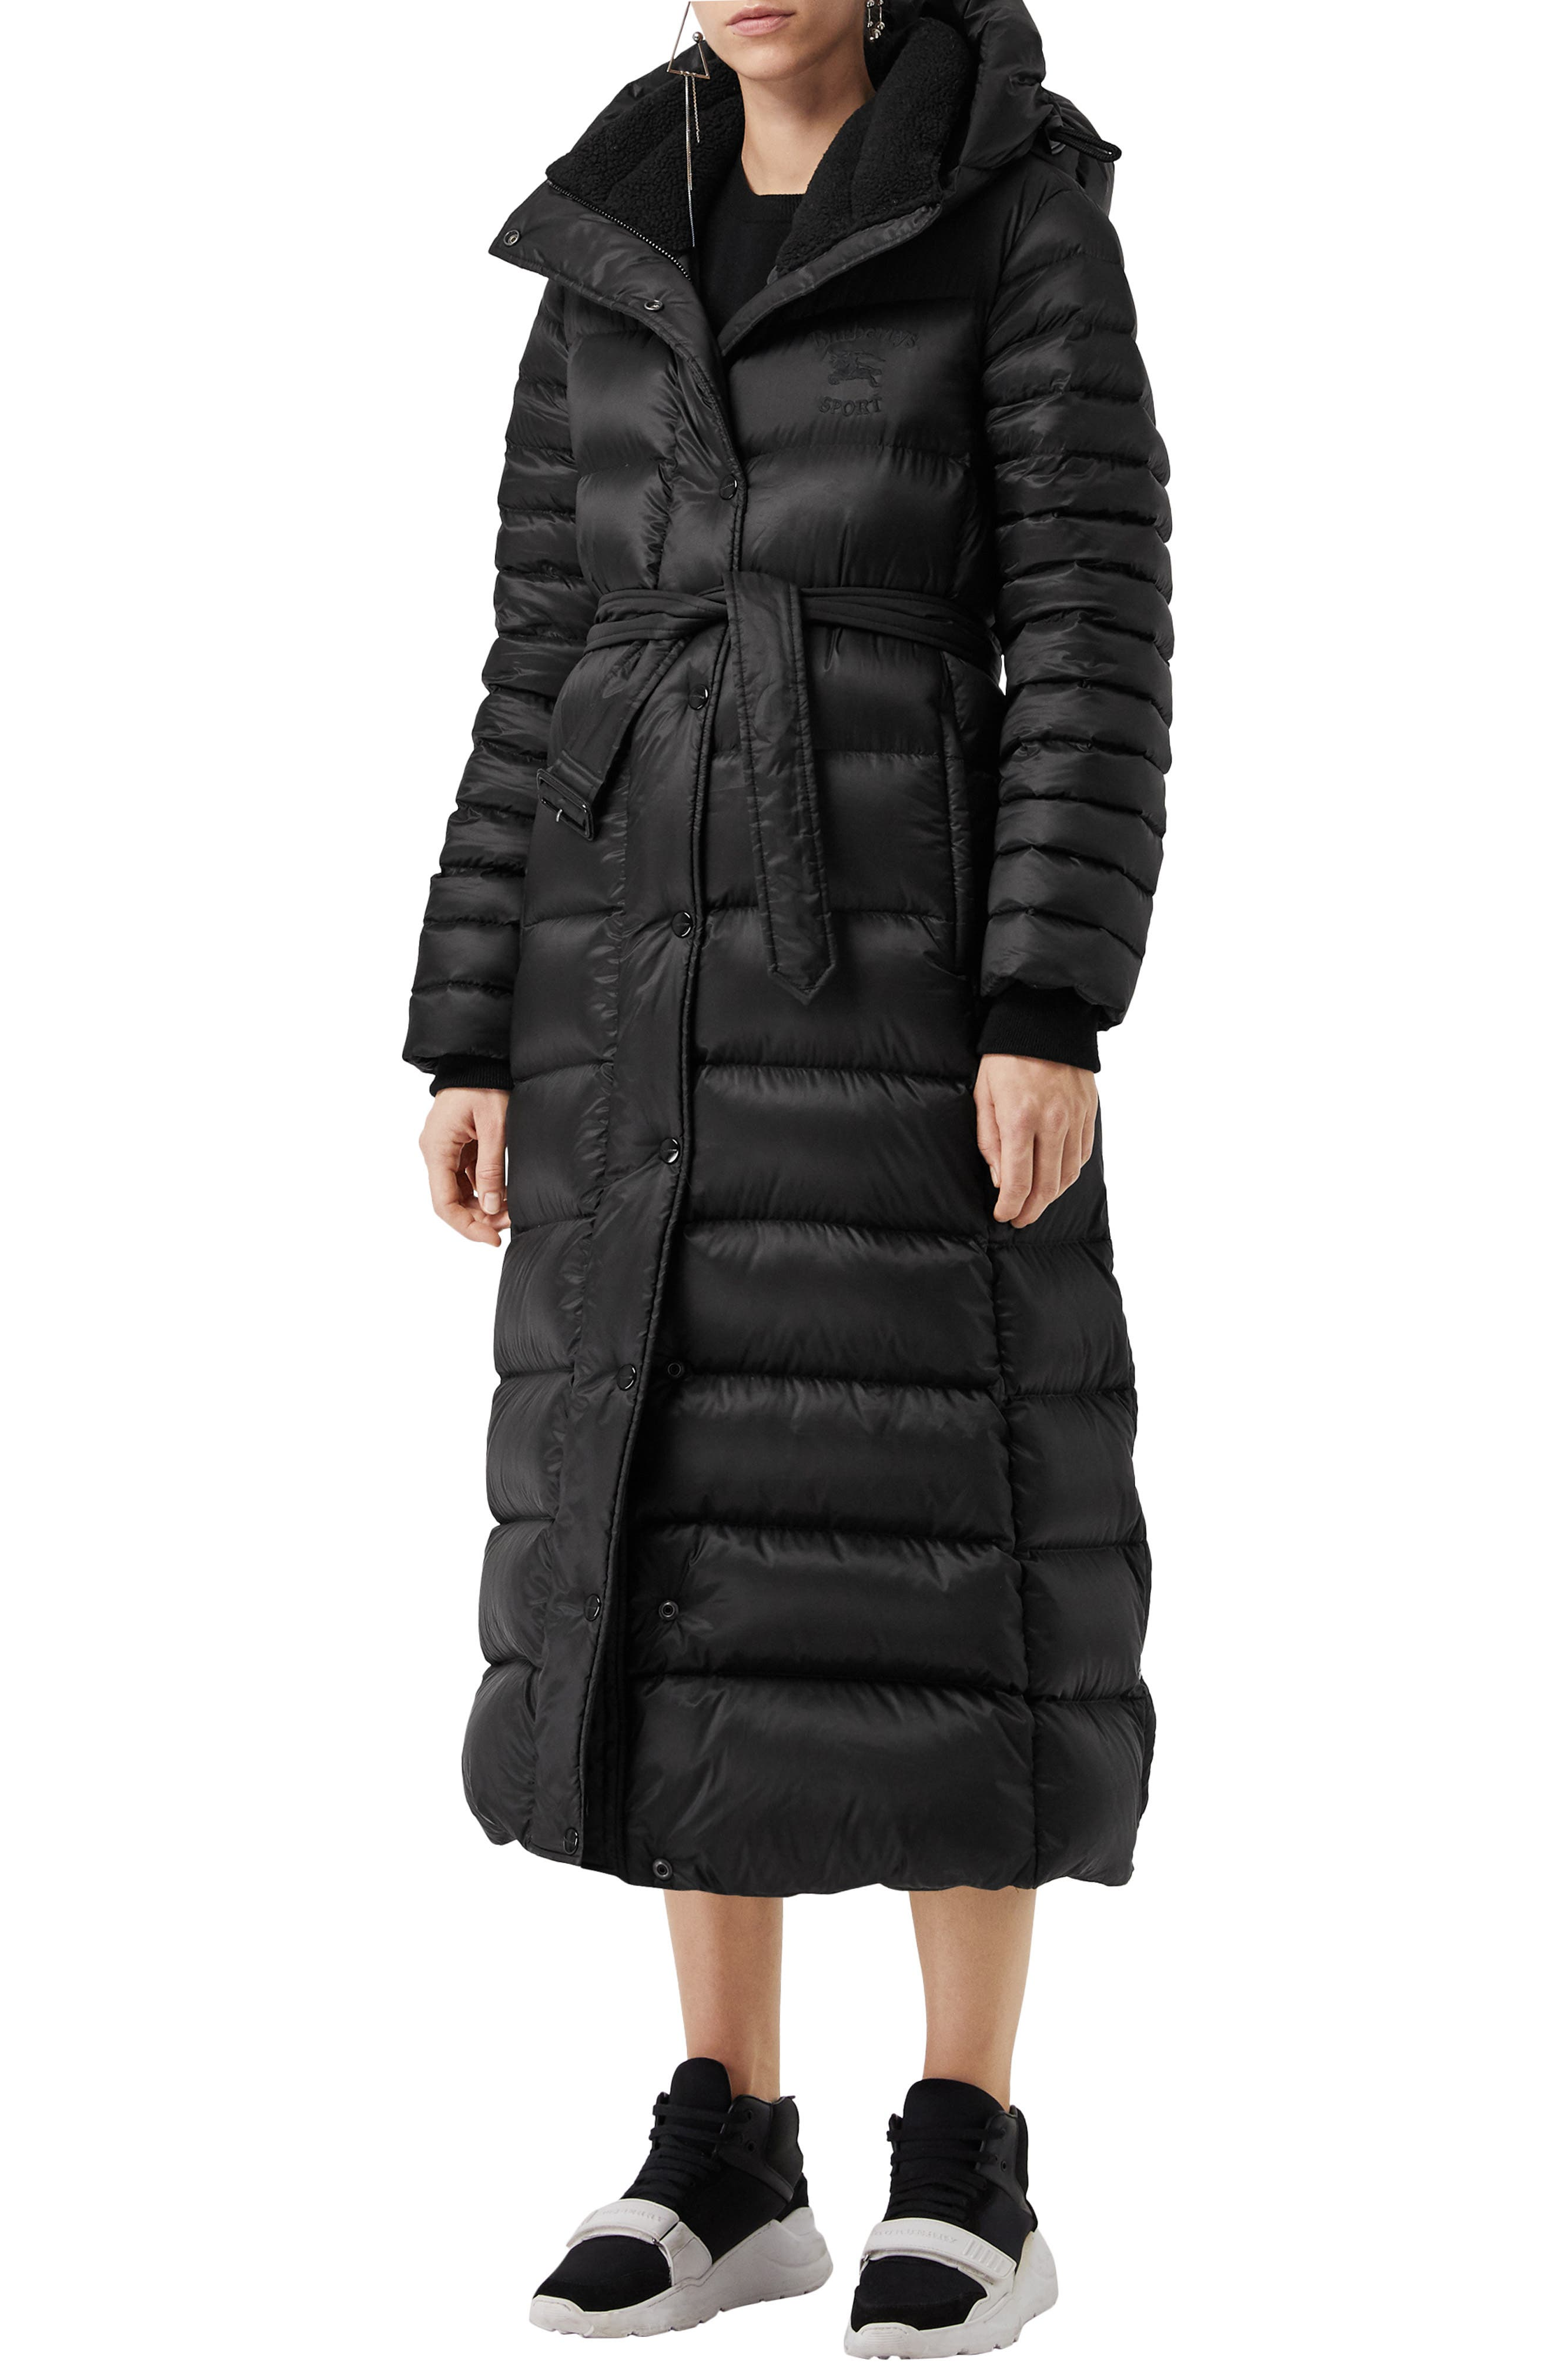 Kington Faux Fur Trim Long Down Coat,                         Main,                         color, BLACK